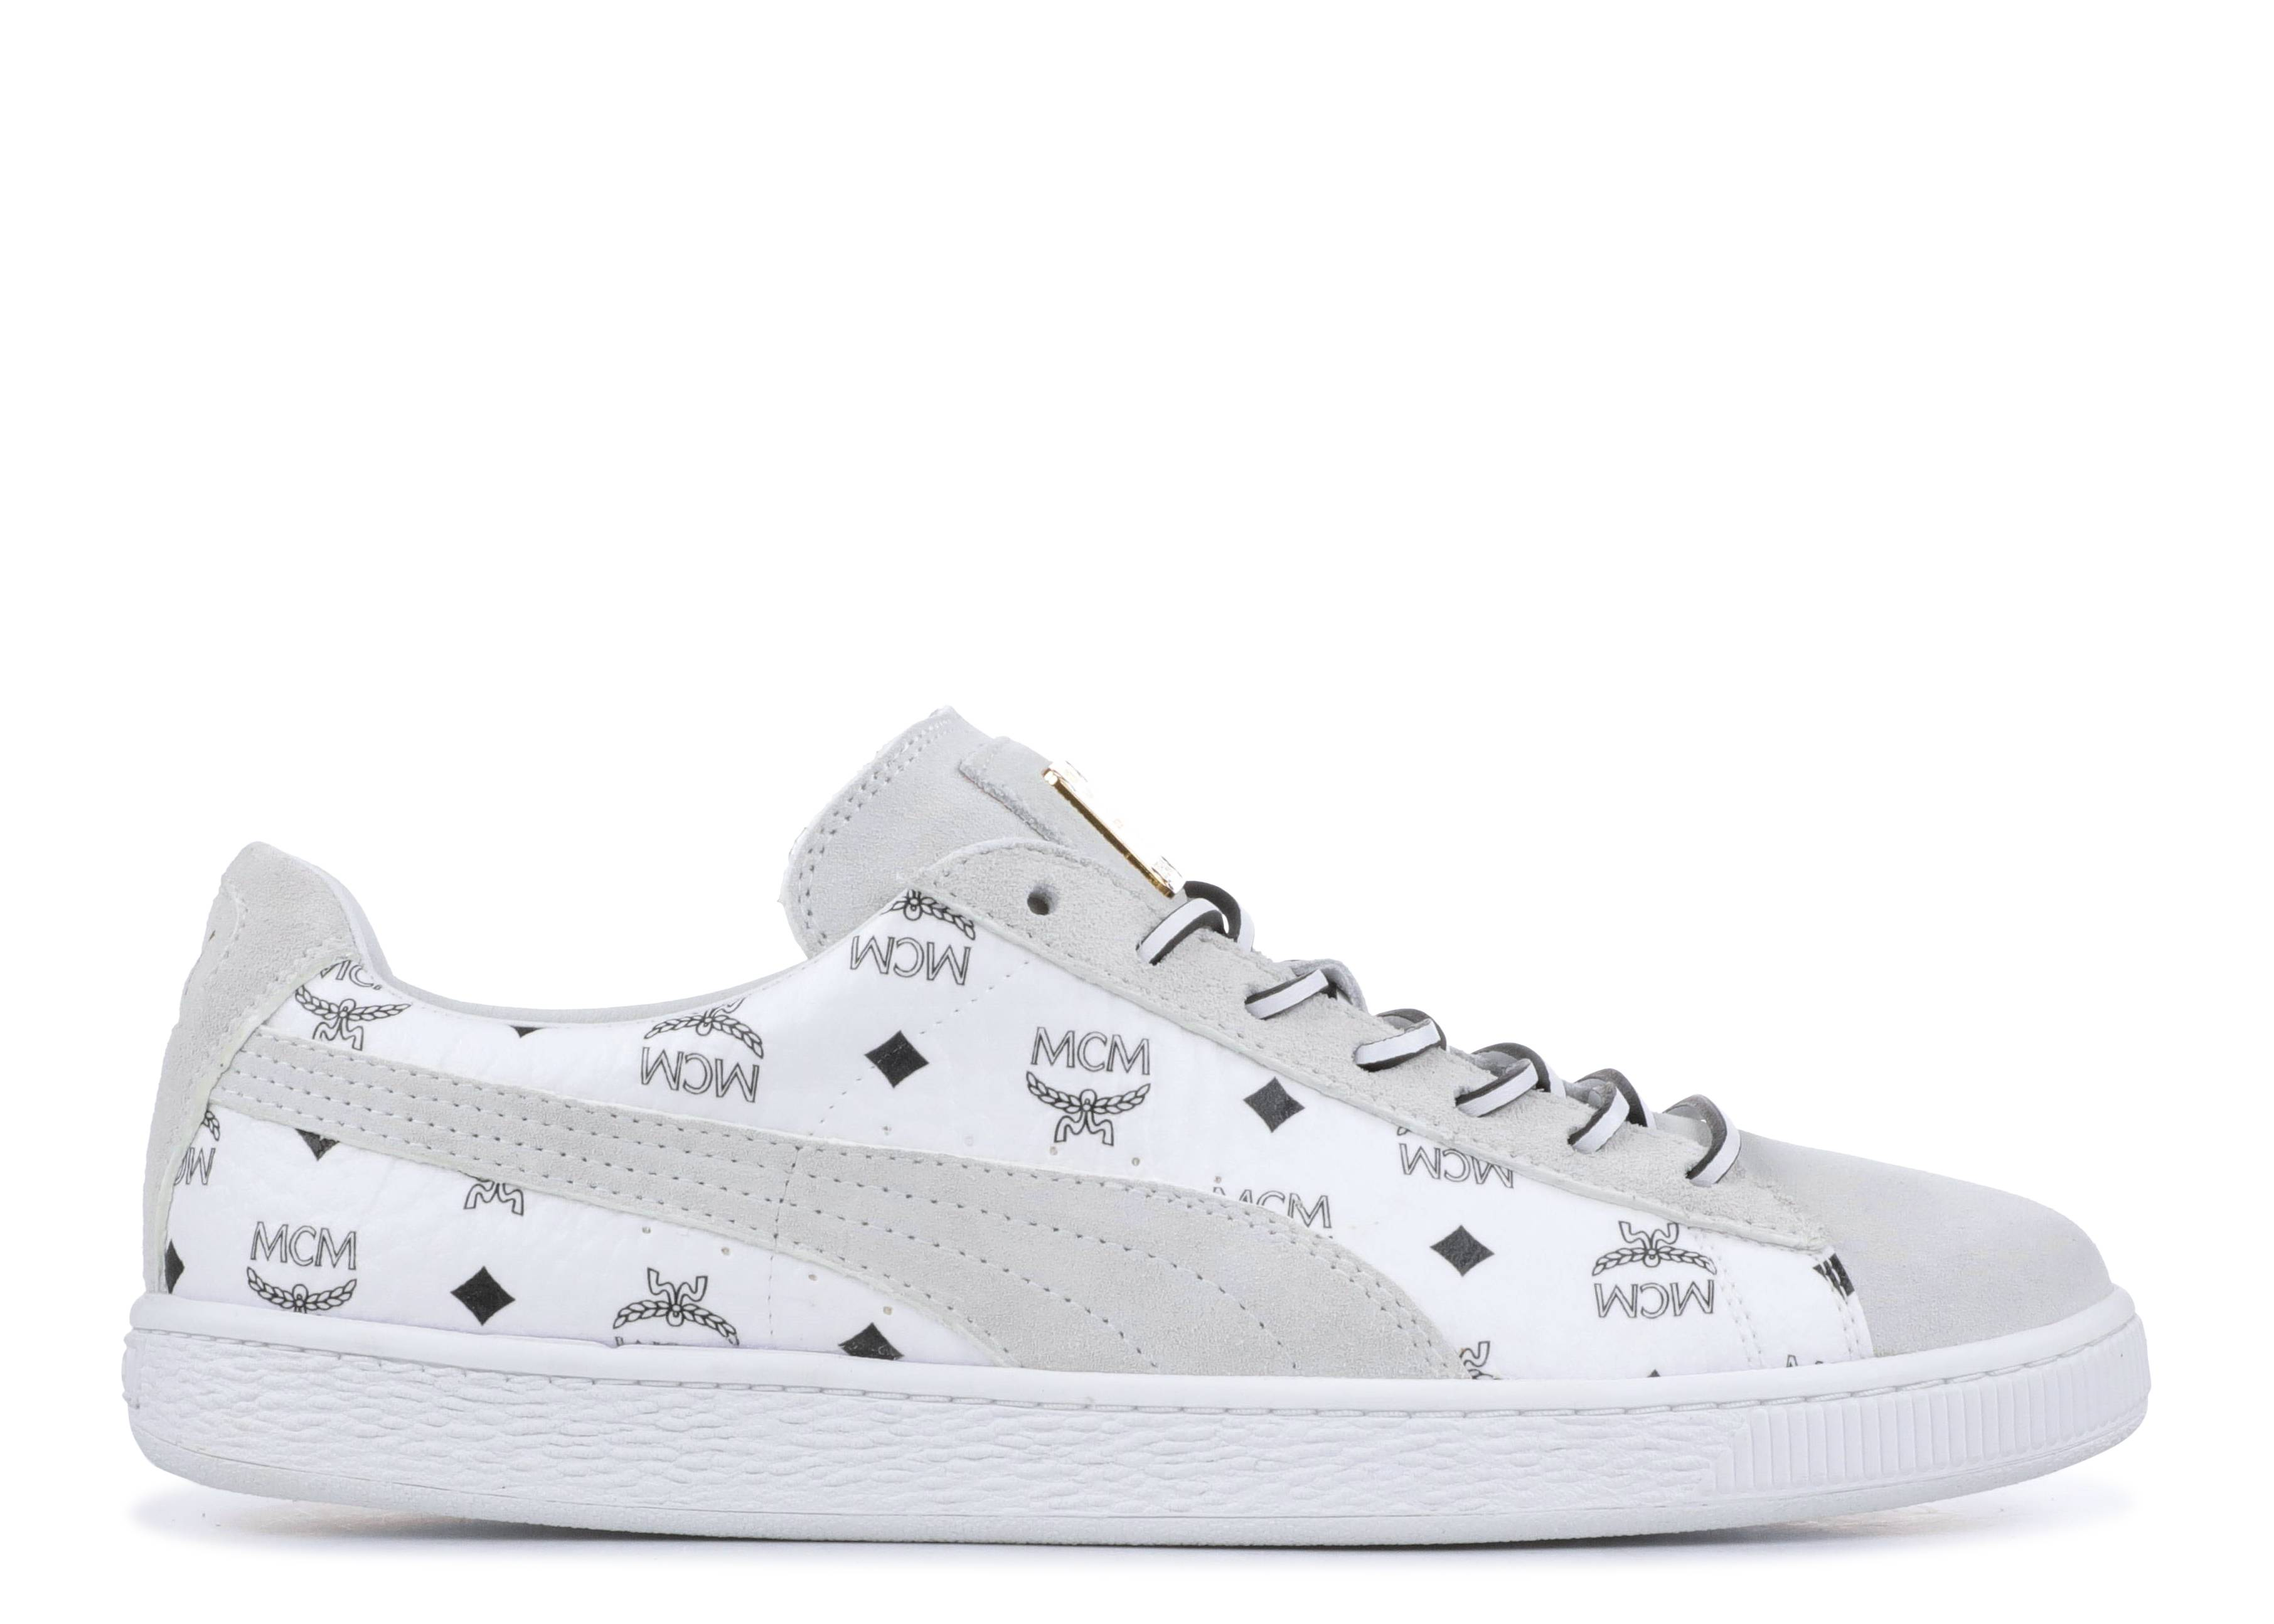 MCM x Suede 'Whisper White'